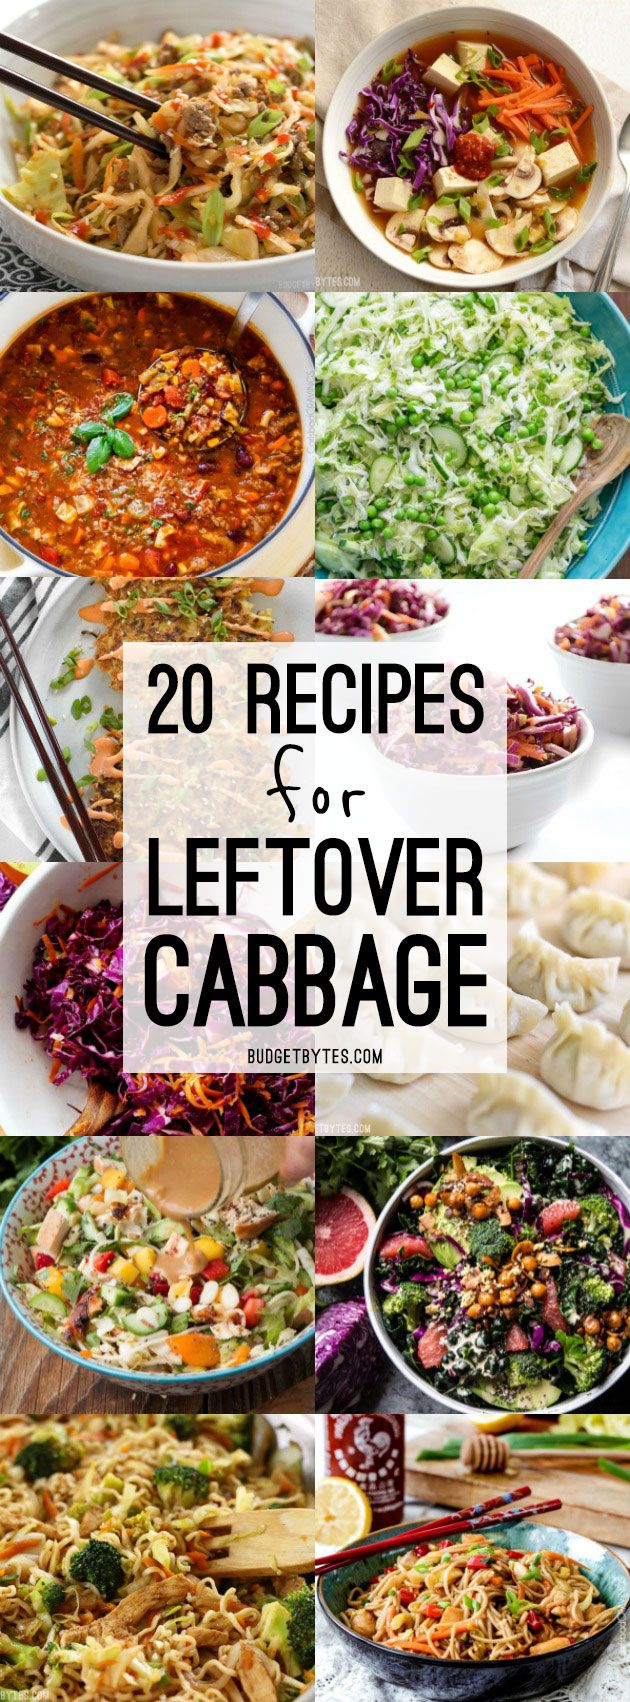 20 Recipes for Leftover Cabbage - BudgetBytes.com